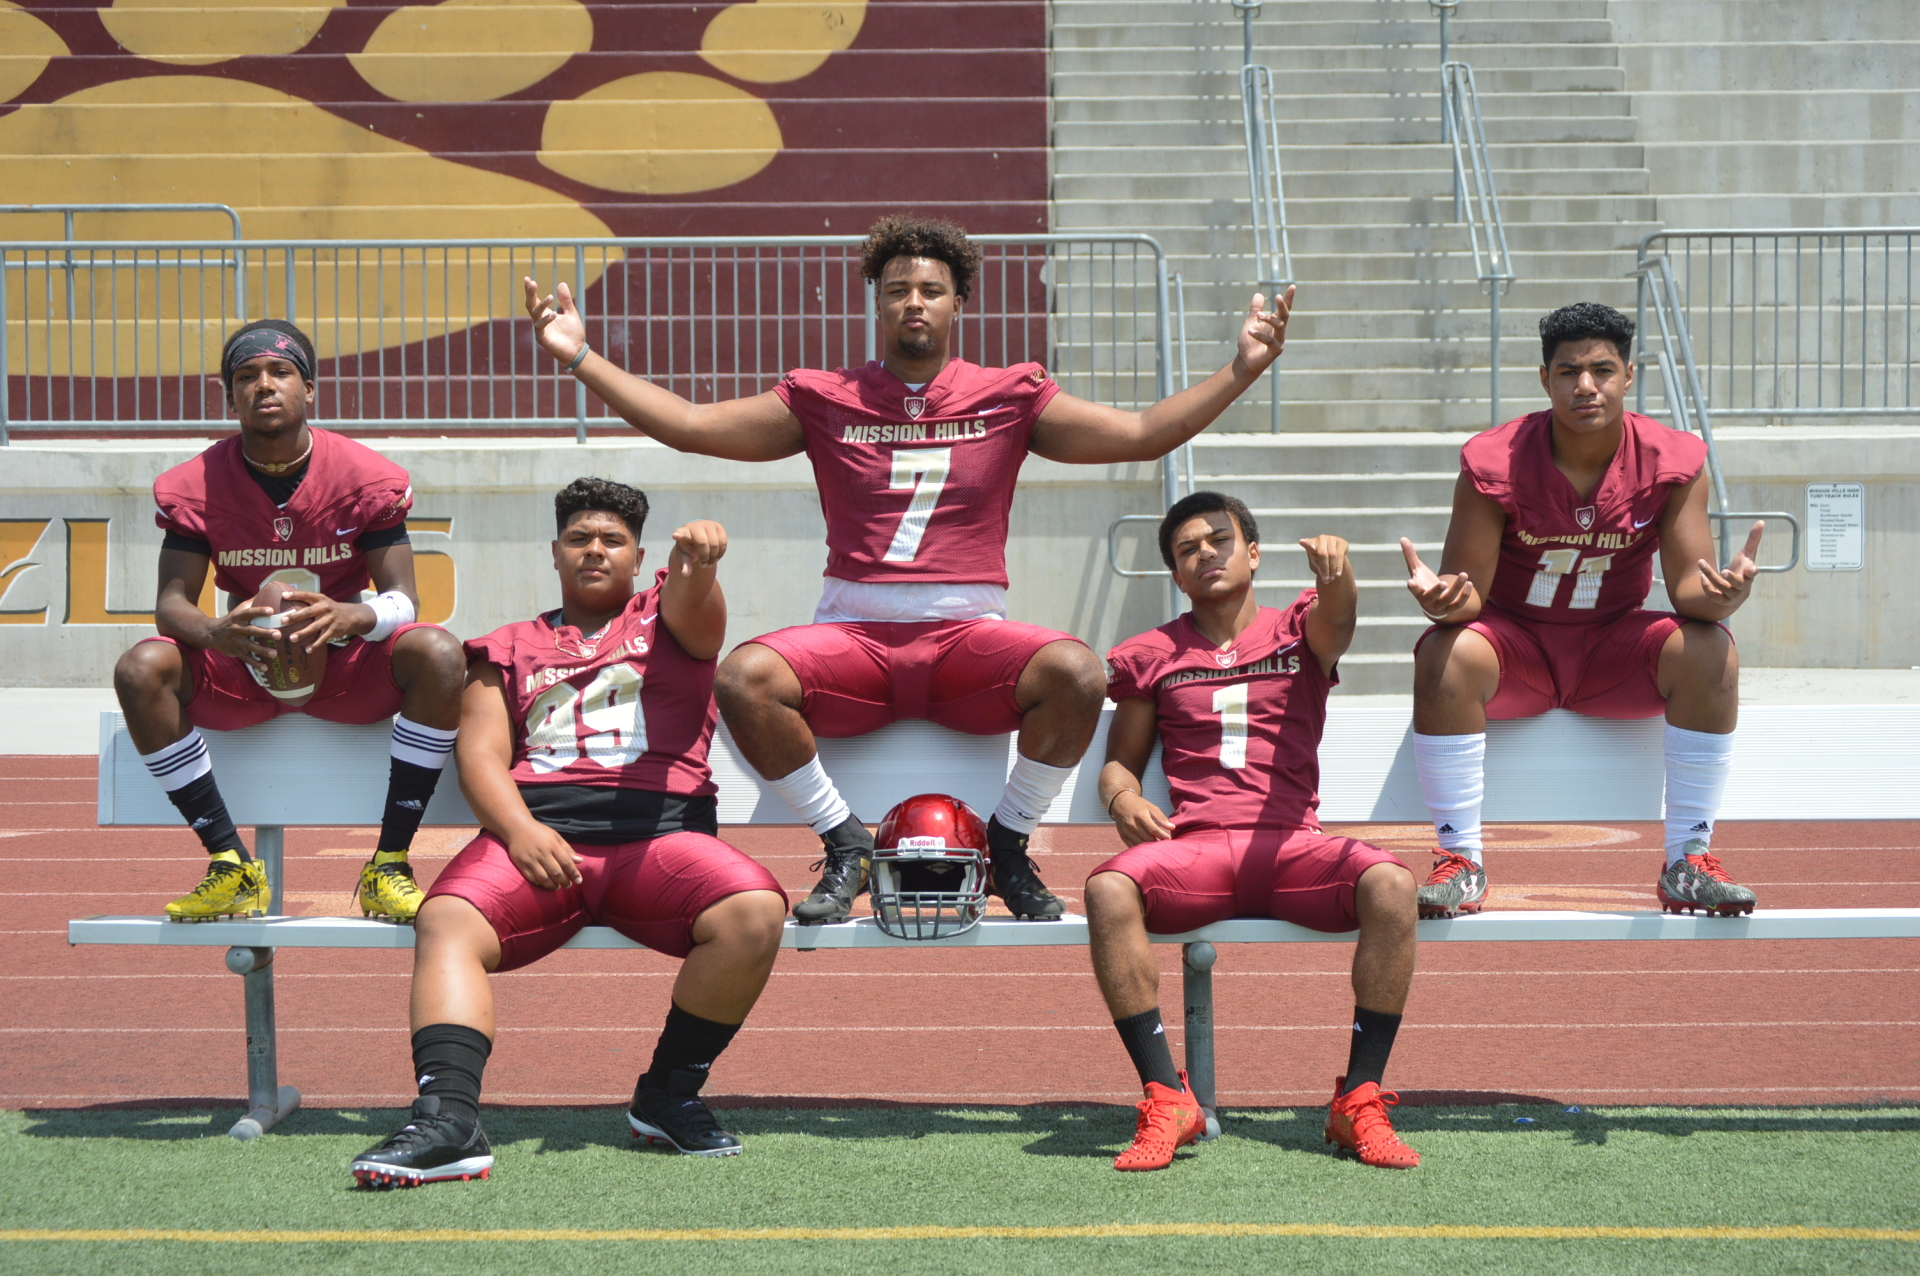 Mission Hills Season Preview